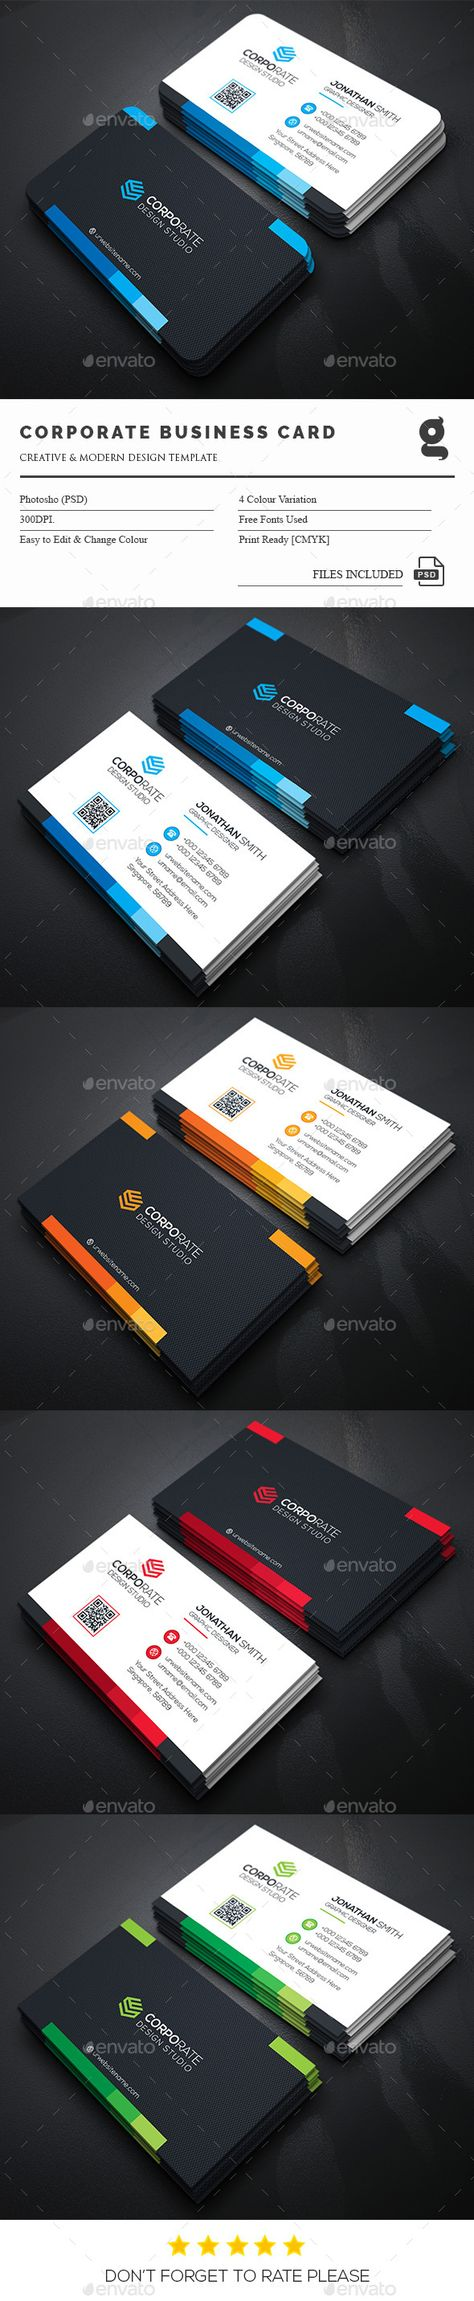 595 best business card inspiration images on pinterest business 595 best business card inspiration images on pinterest business card design templates lipsense business cards and business fbccfo Image collections